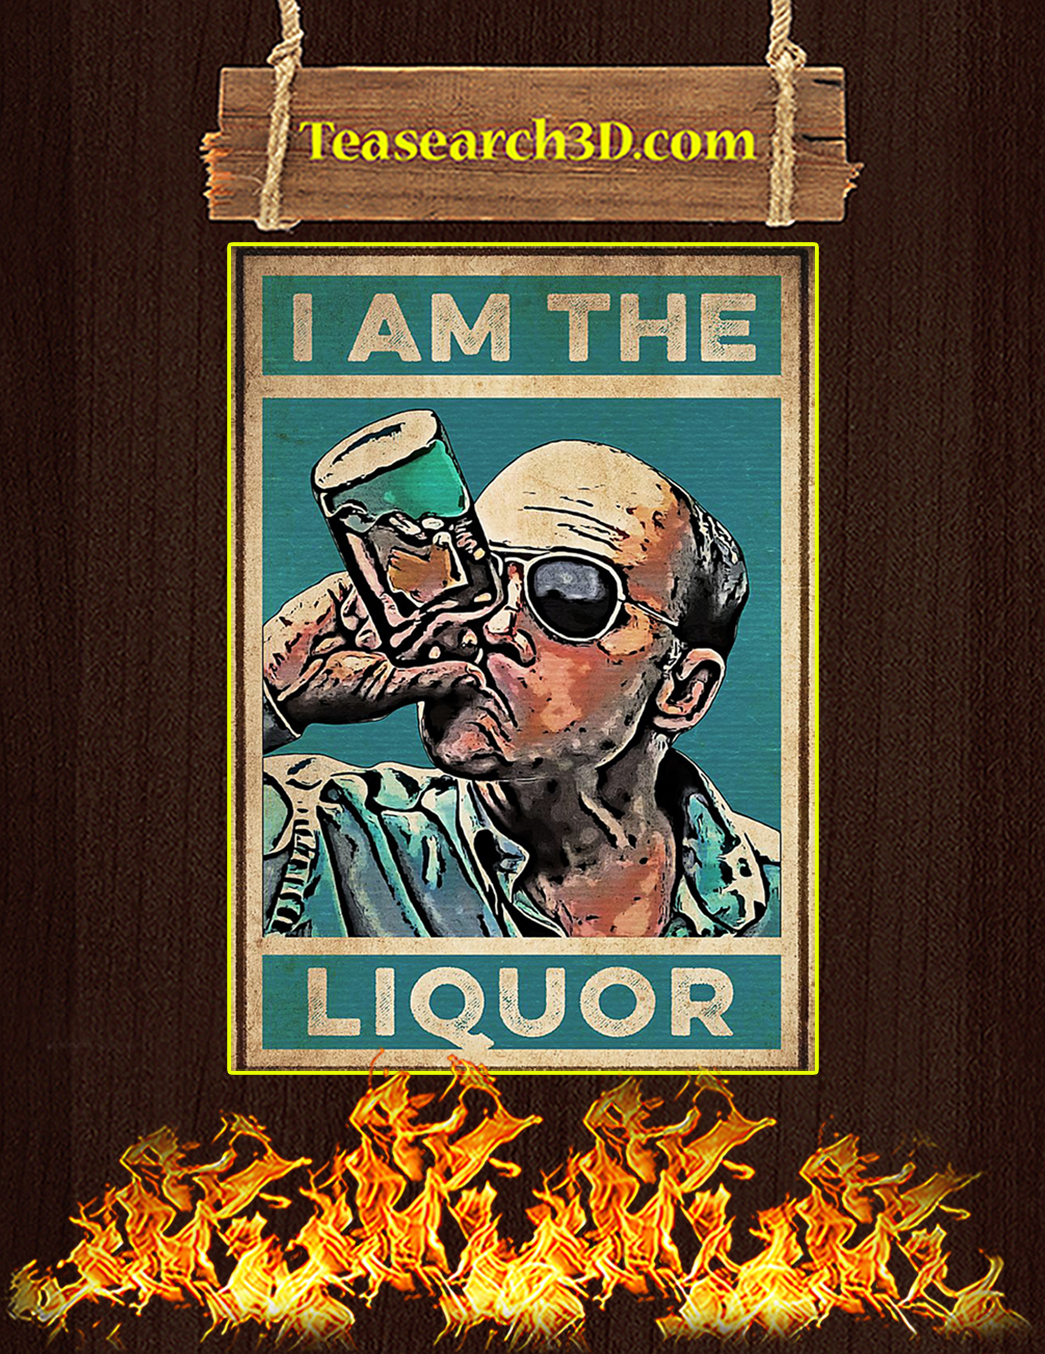 I am the liquor poster A1